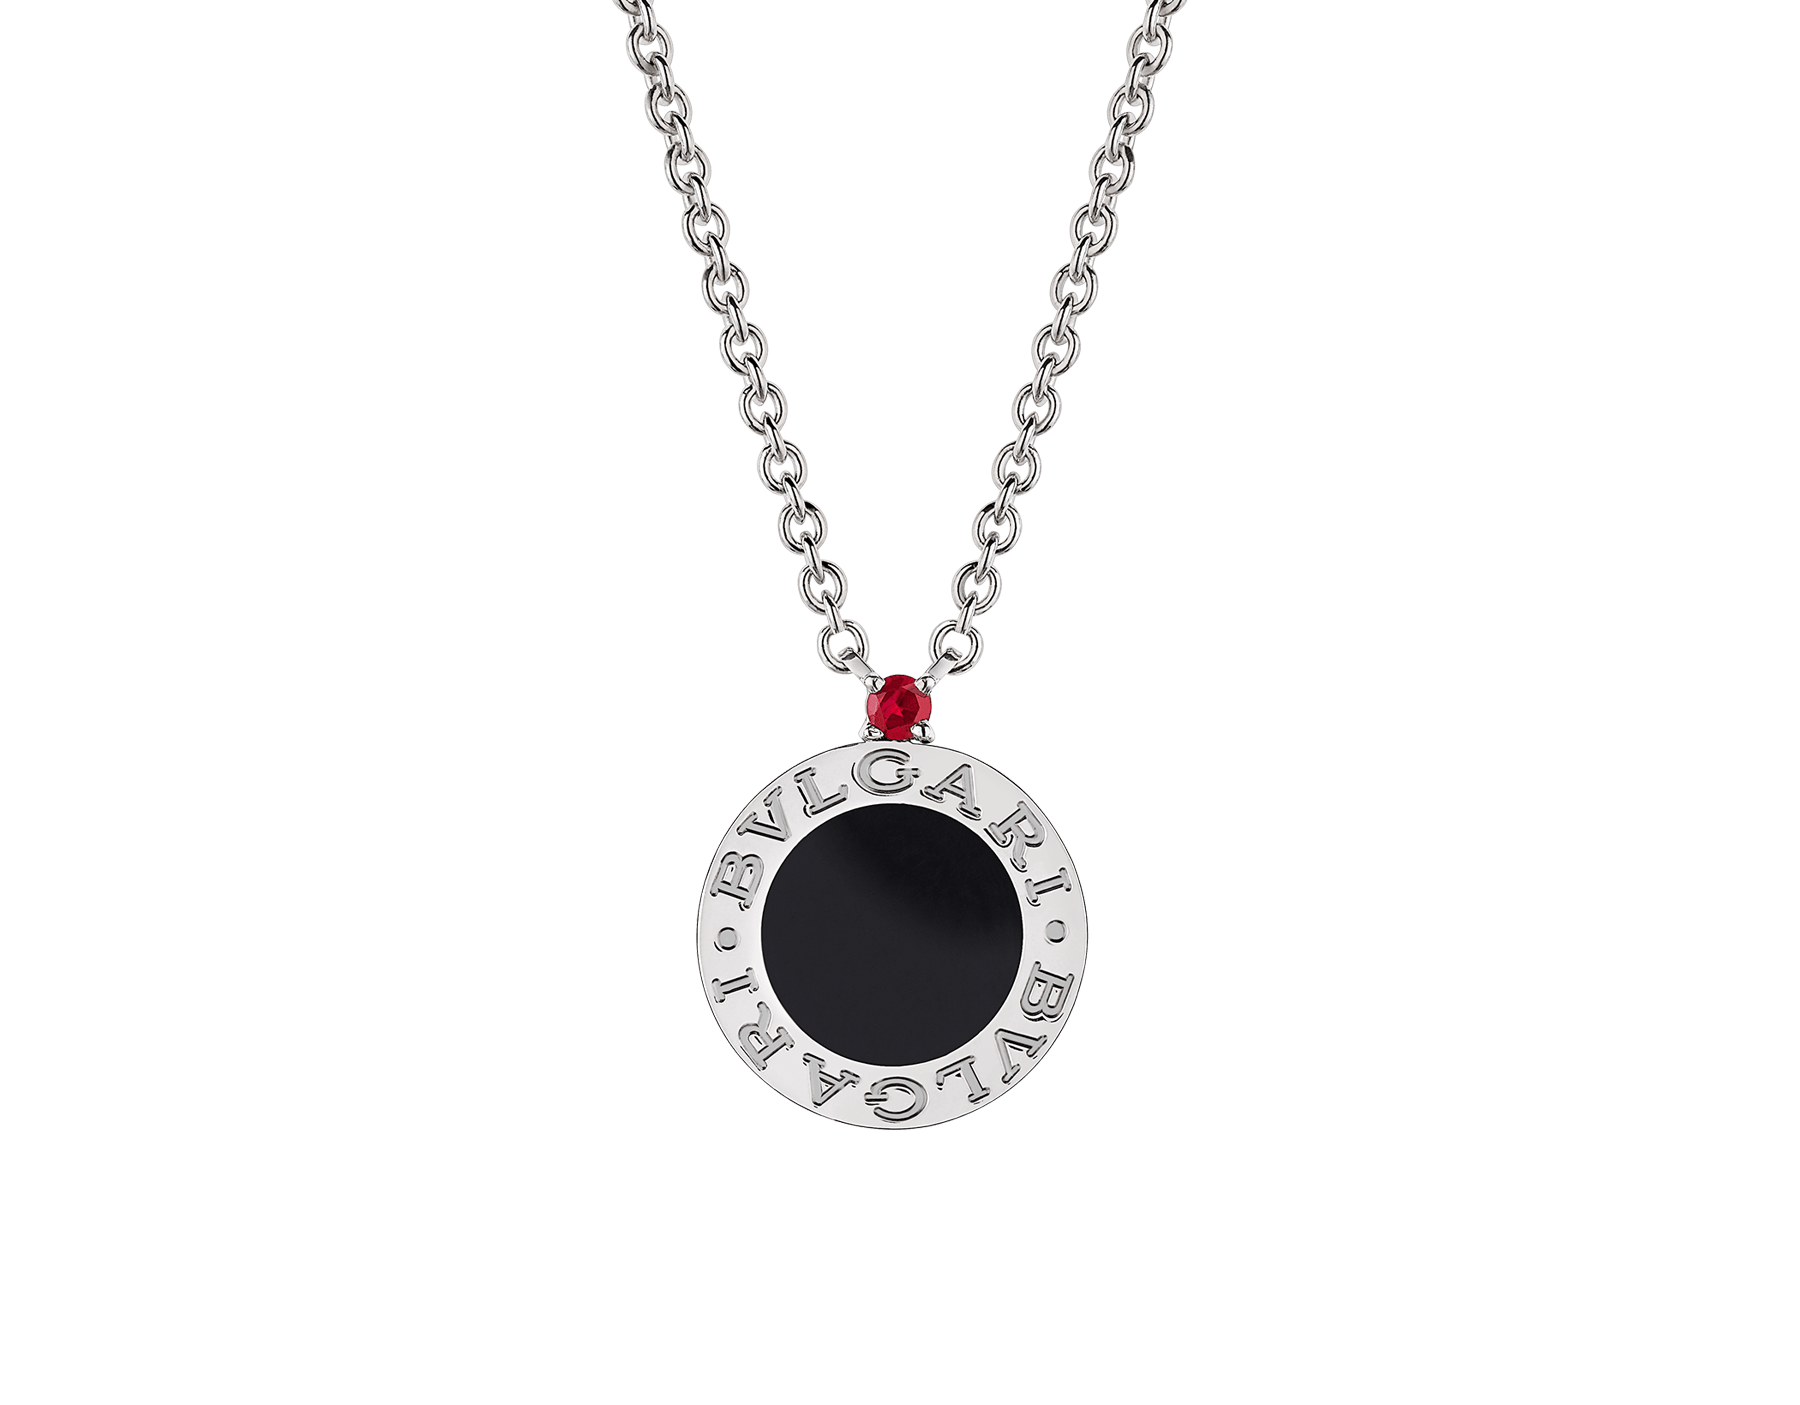 Collana Save the Children 10th Anniversary in argento 925 con elemento in onice e rubino. 356910 image 1